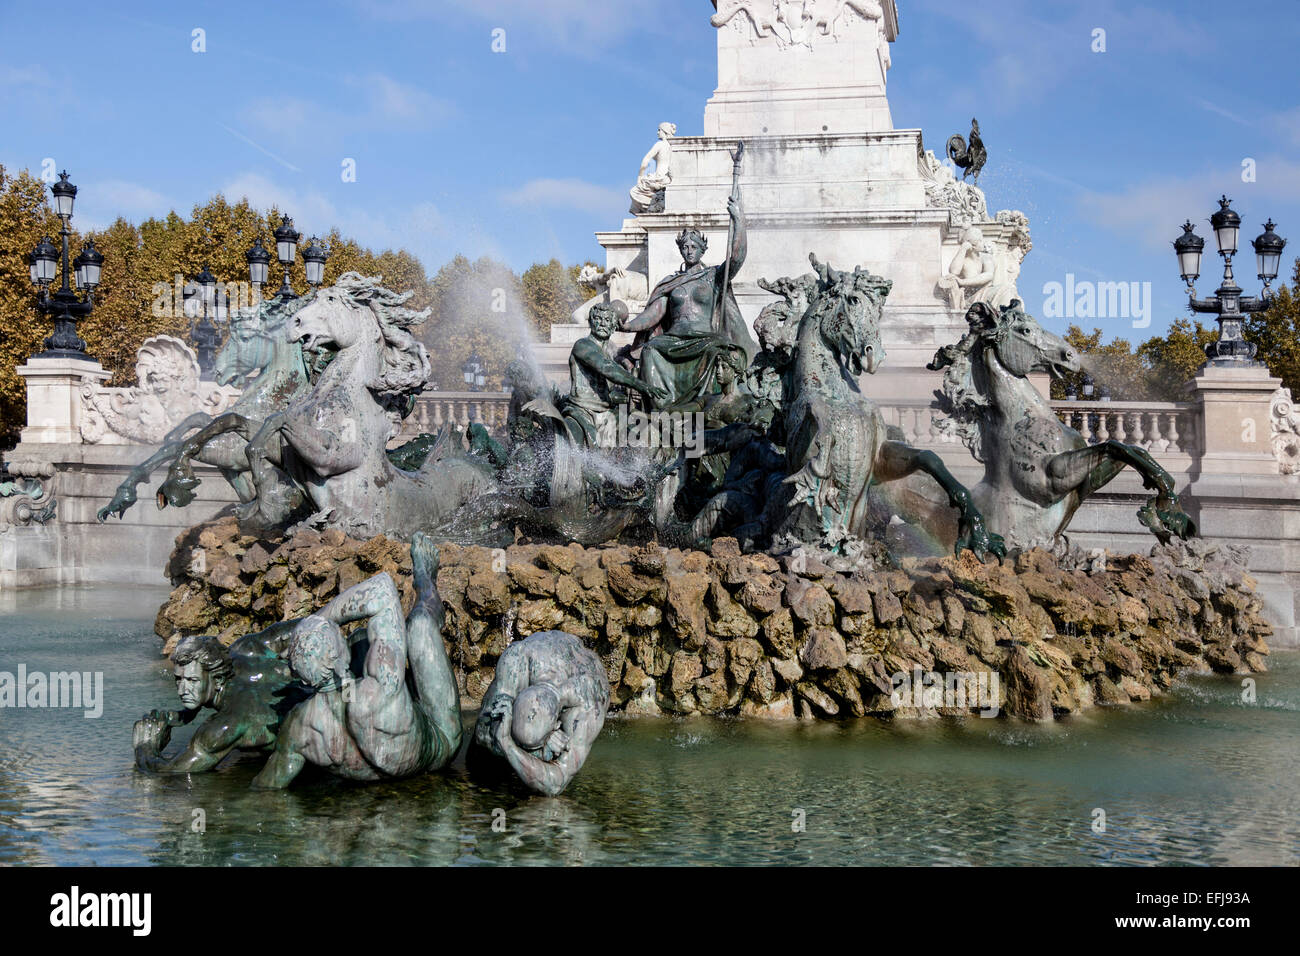 The monument of Girondists on the ' Place des Quinconces', in Bordeaux (Aquitaine - France). Erected between 1894 Stock Photo